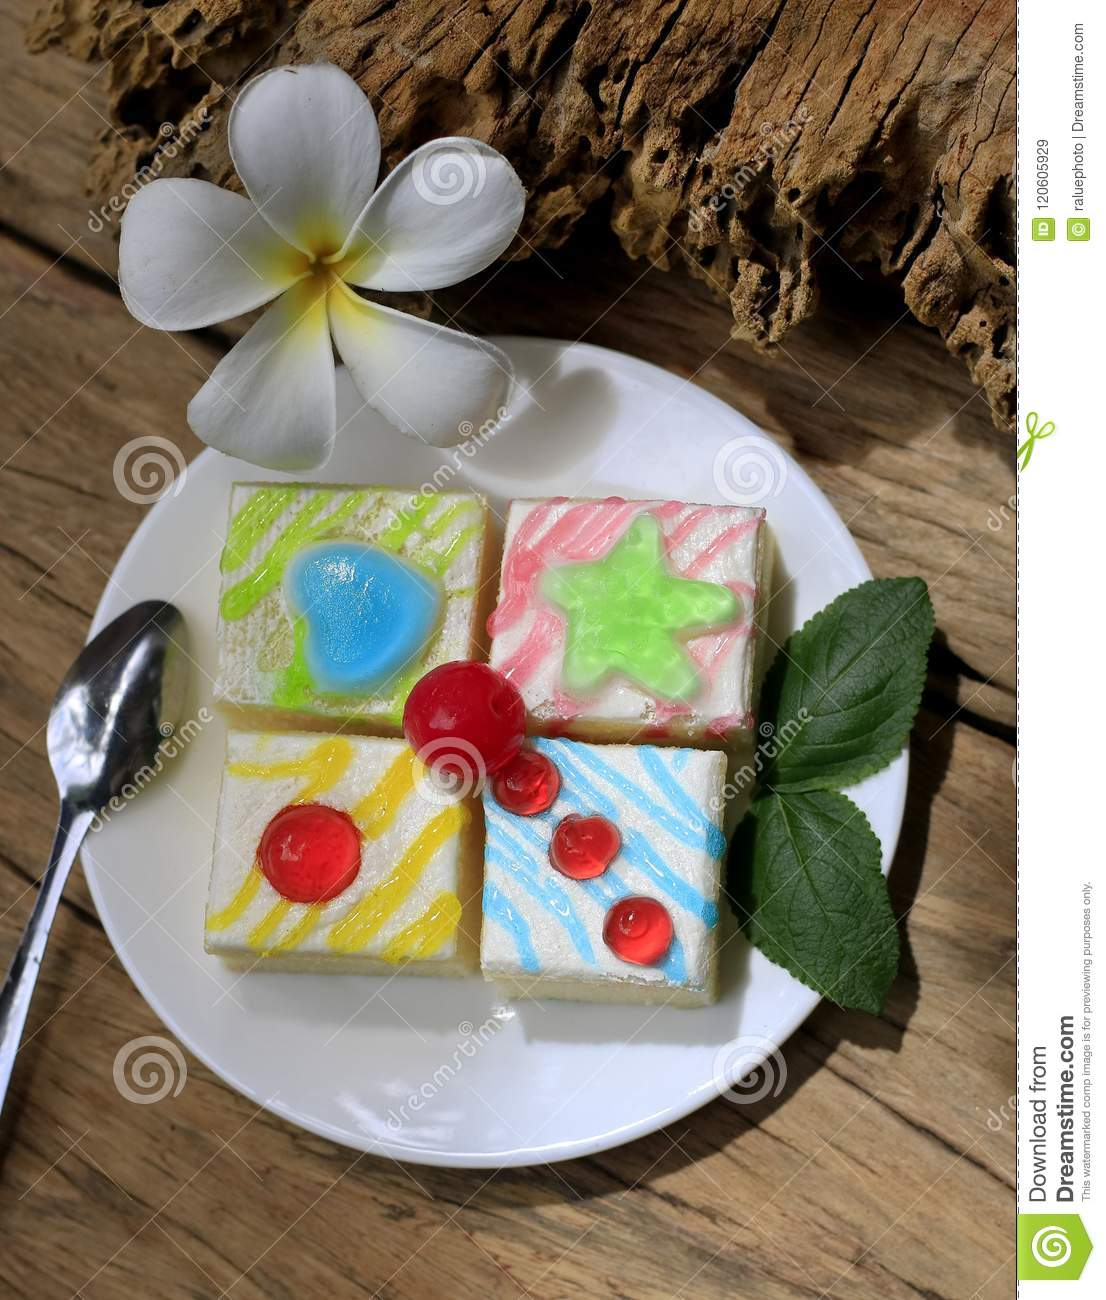 Fancy Cake On Old Wooden Floor Stock Image Image Of Birthday